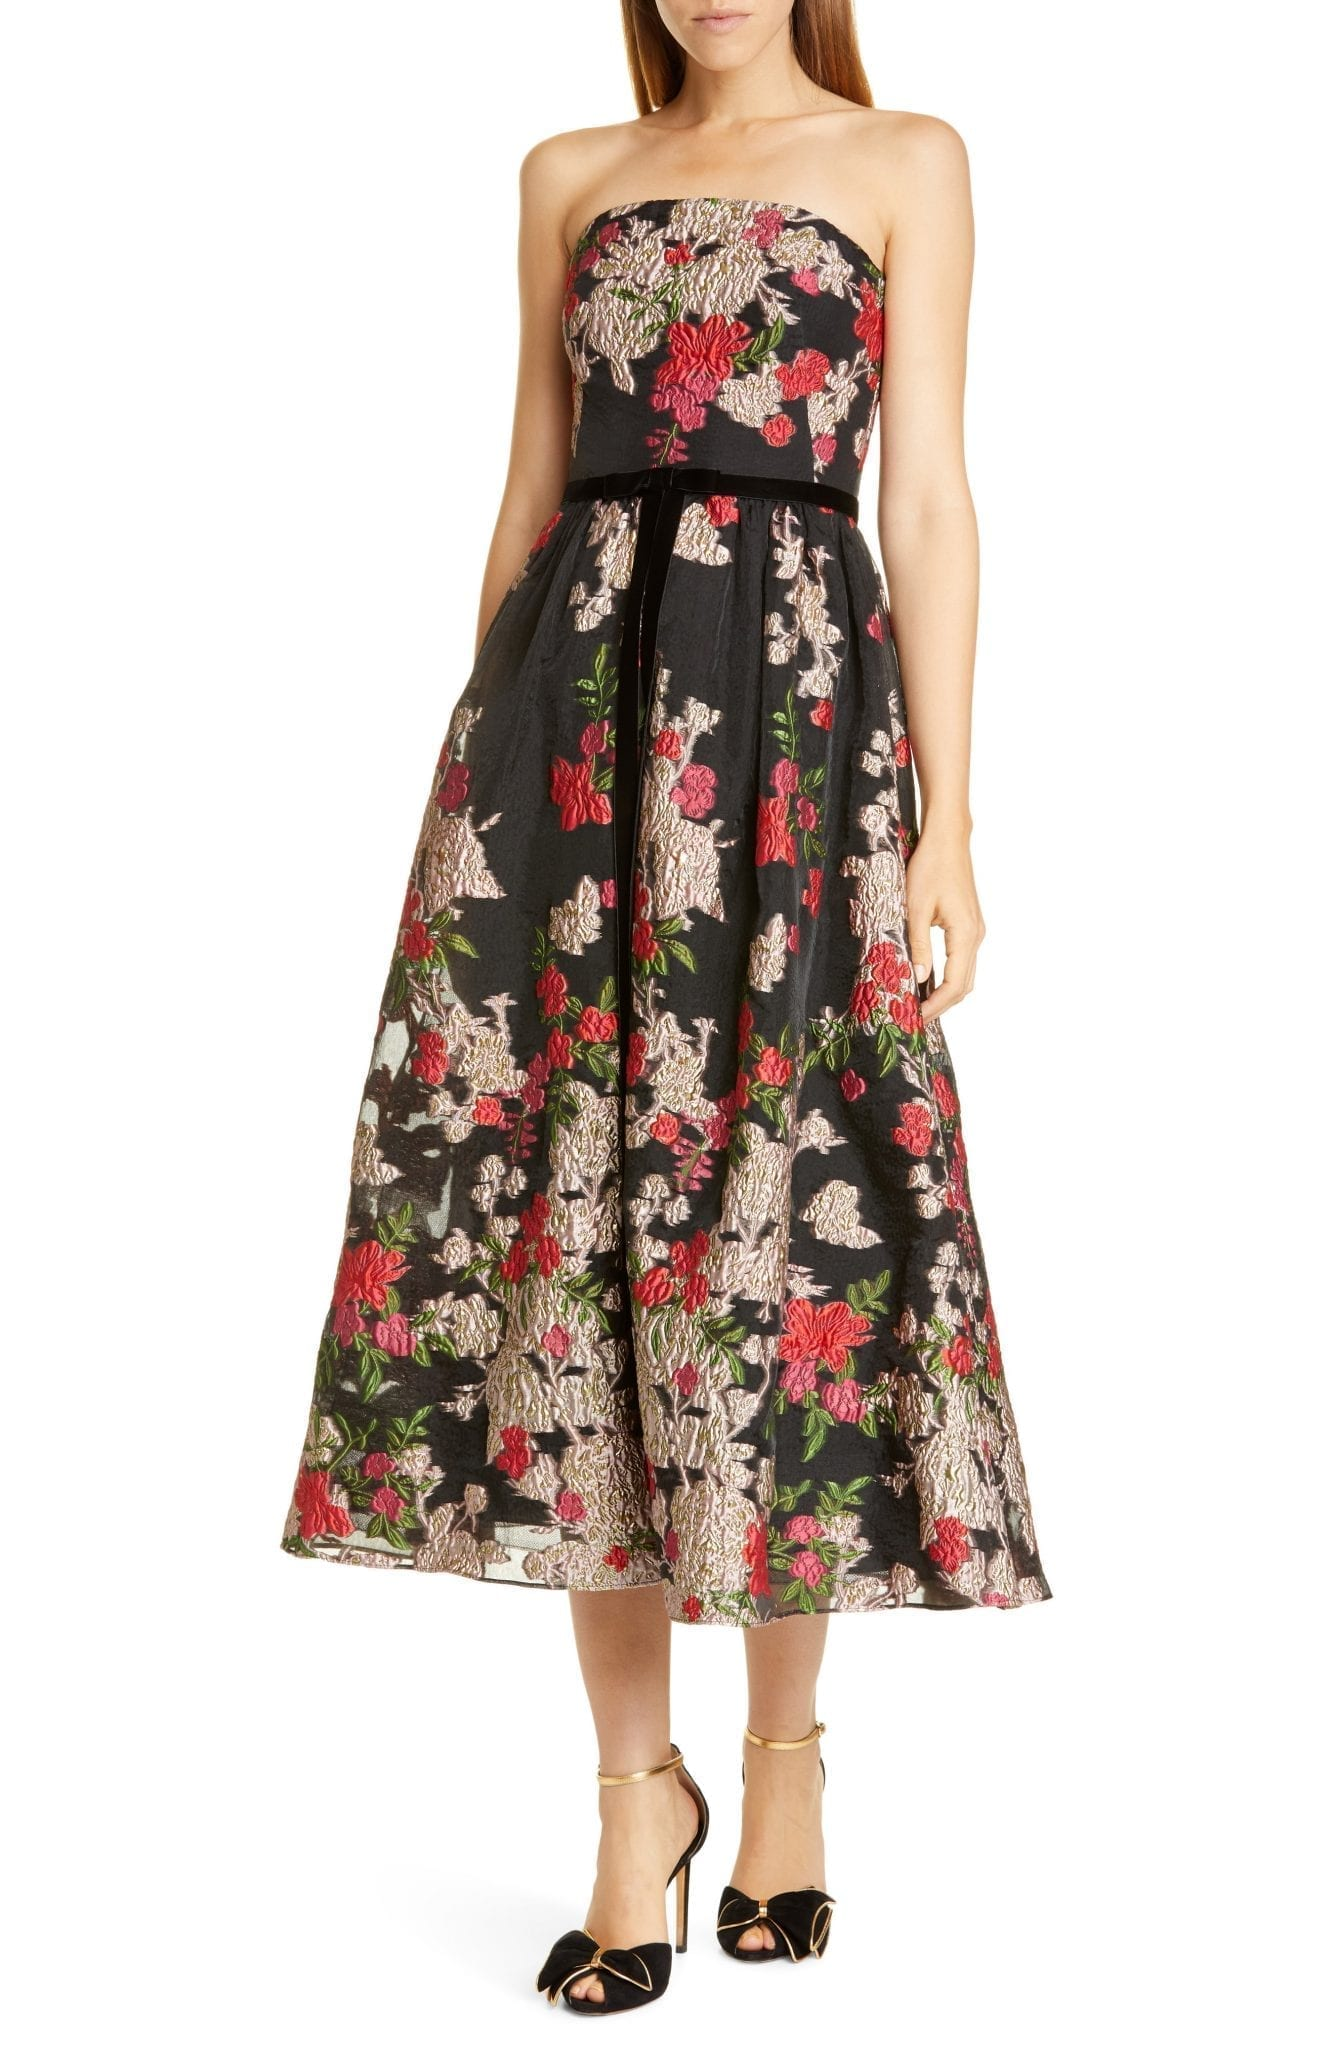 MARCHESA NOTTE Floral Embroidered Strapless Midi Dress